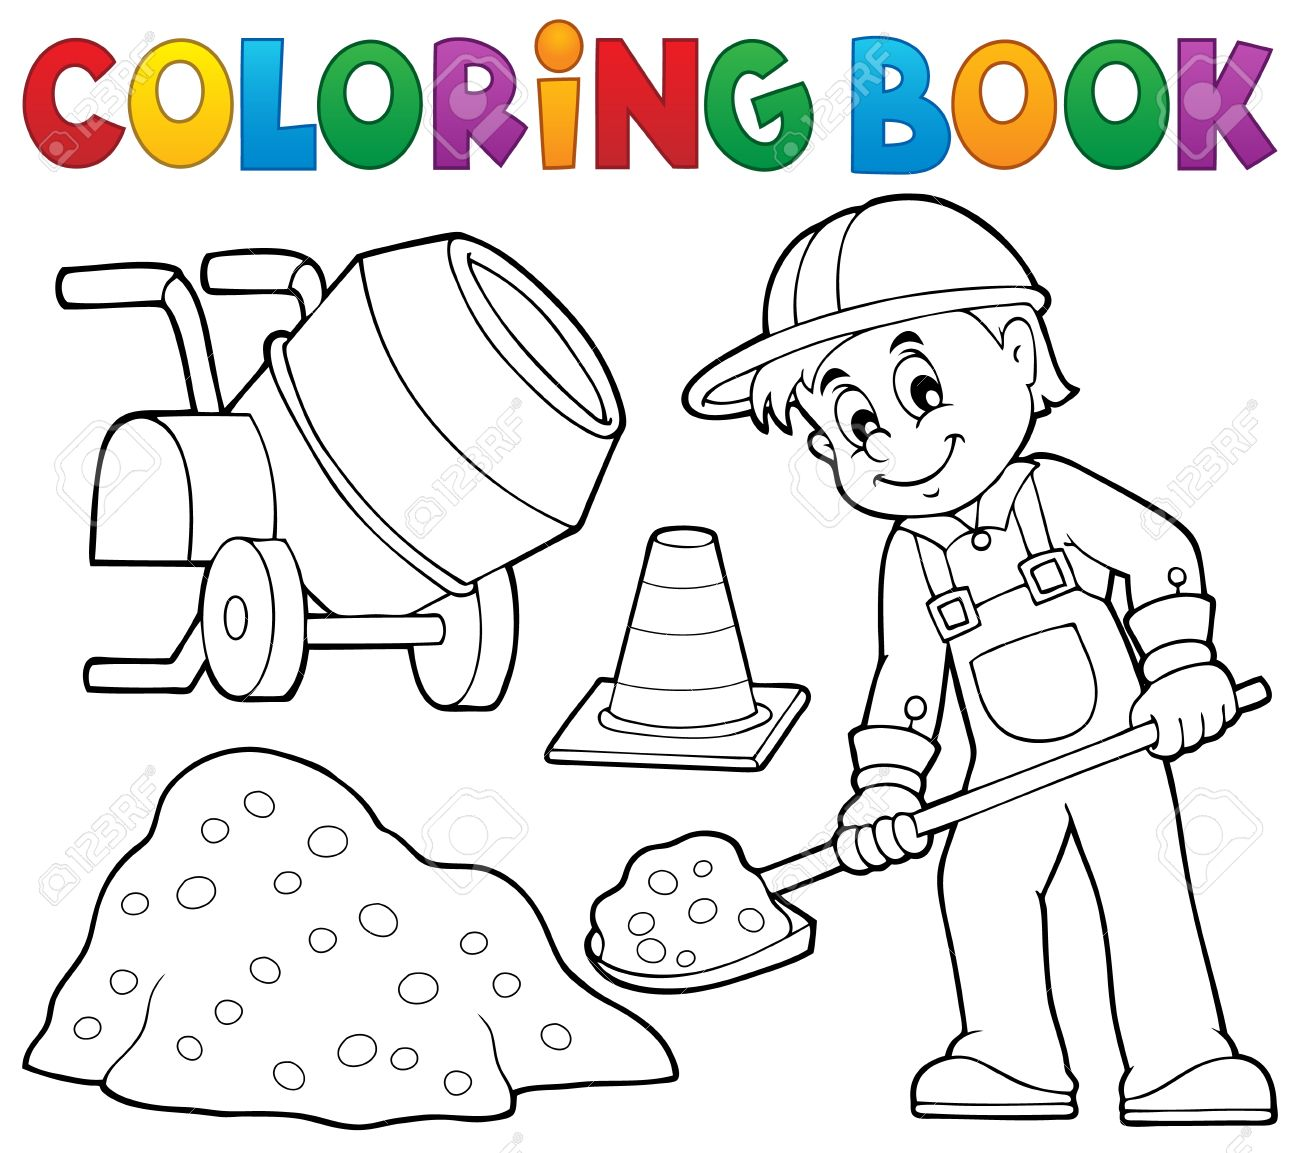 Uncategorized Construction Worker Coloring Pages coloring book construction worker 2 vector illustration royalty stock 46609735